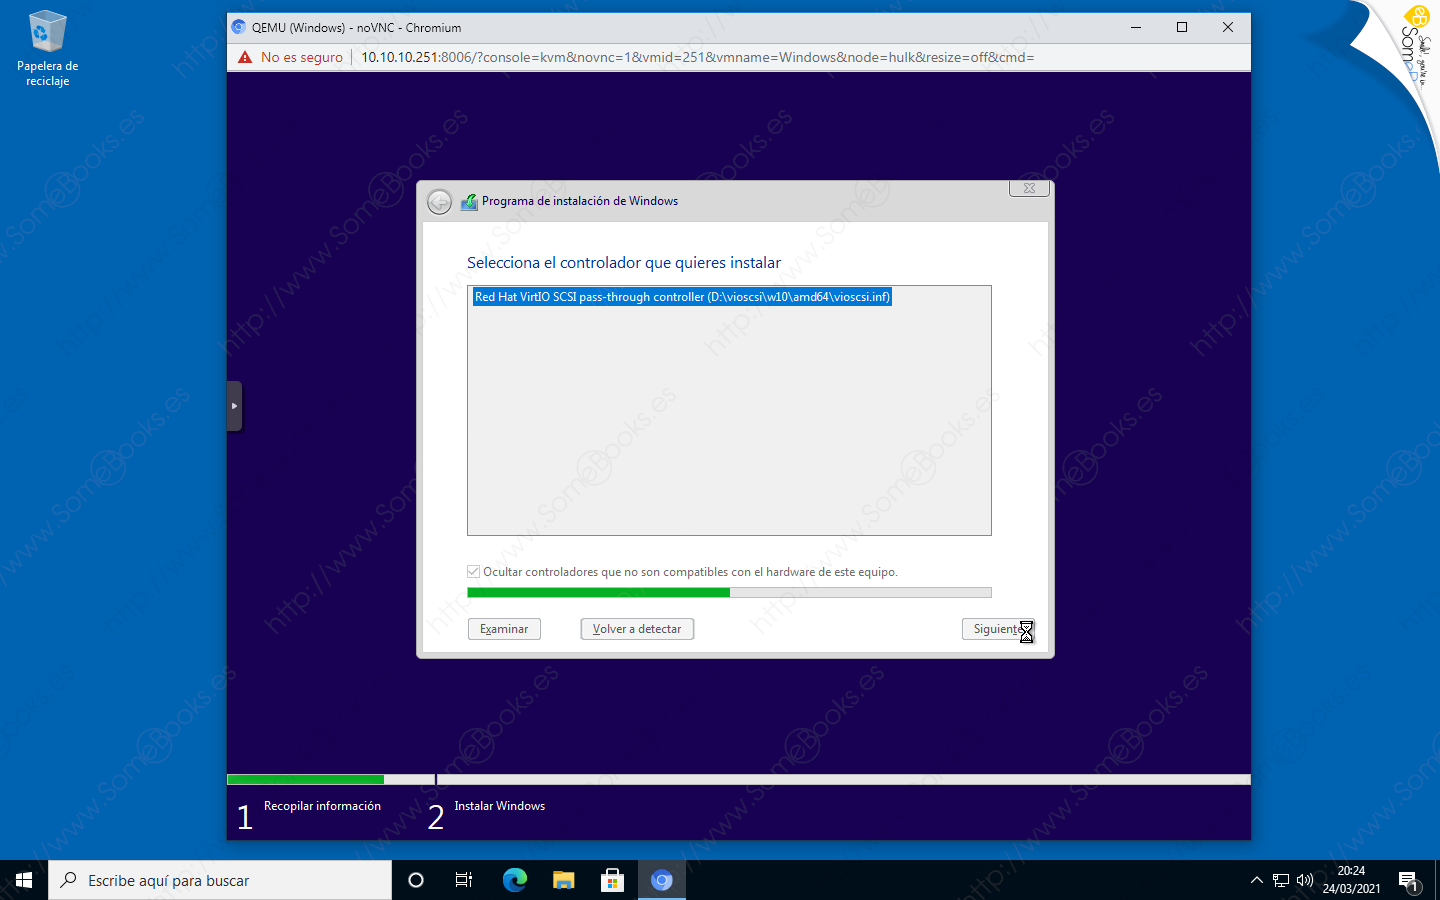 Instalar-Windows-10-en-una-maquina-virtual-sobre-Proxmox-VE-009